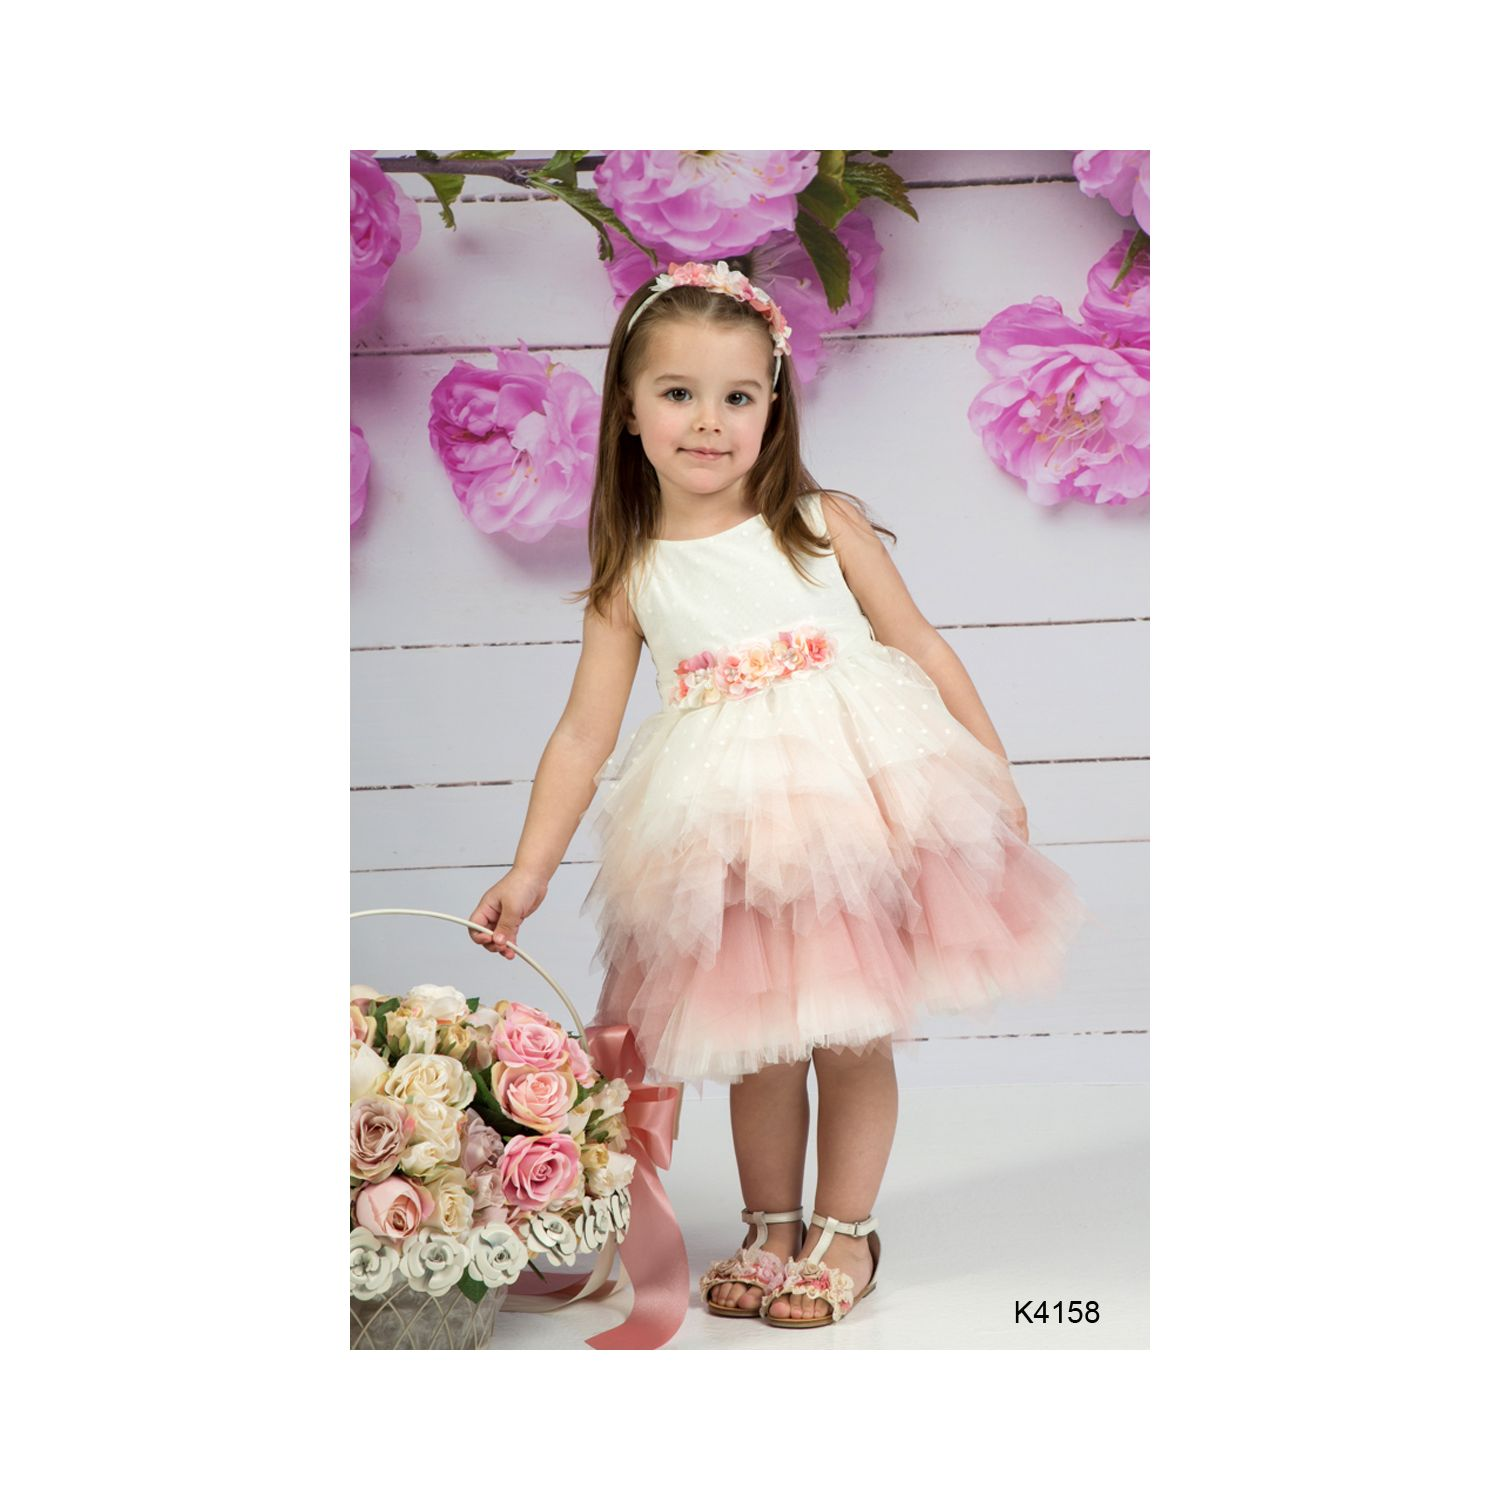 Romantic Christening dress made in Greece K4158